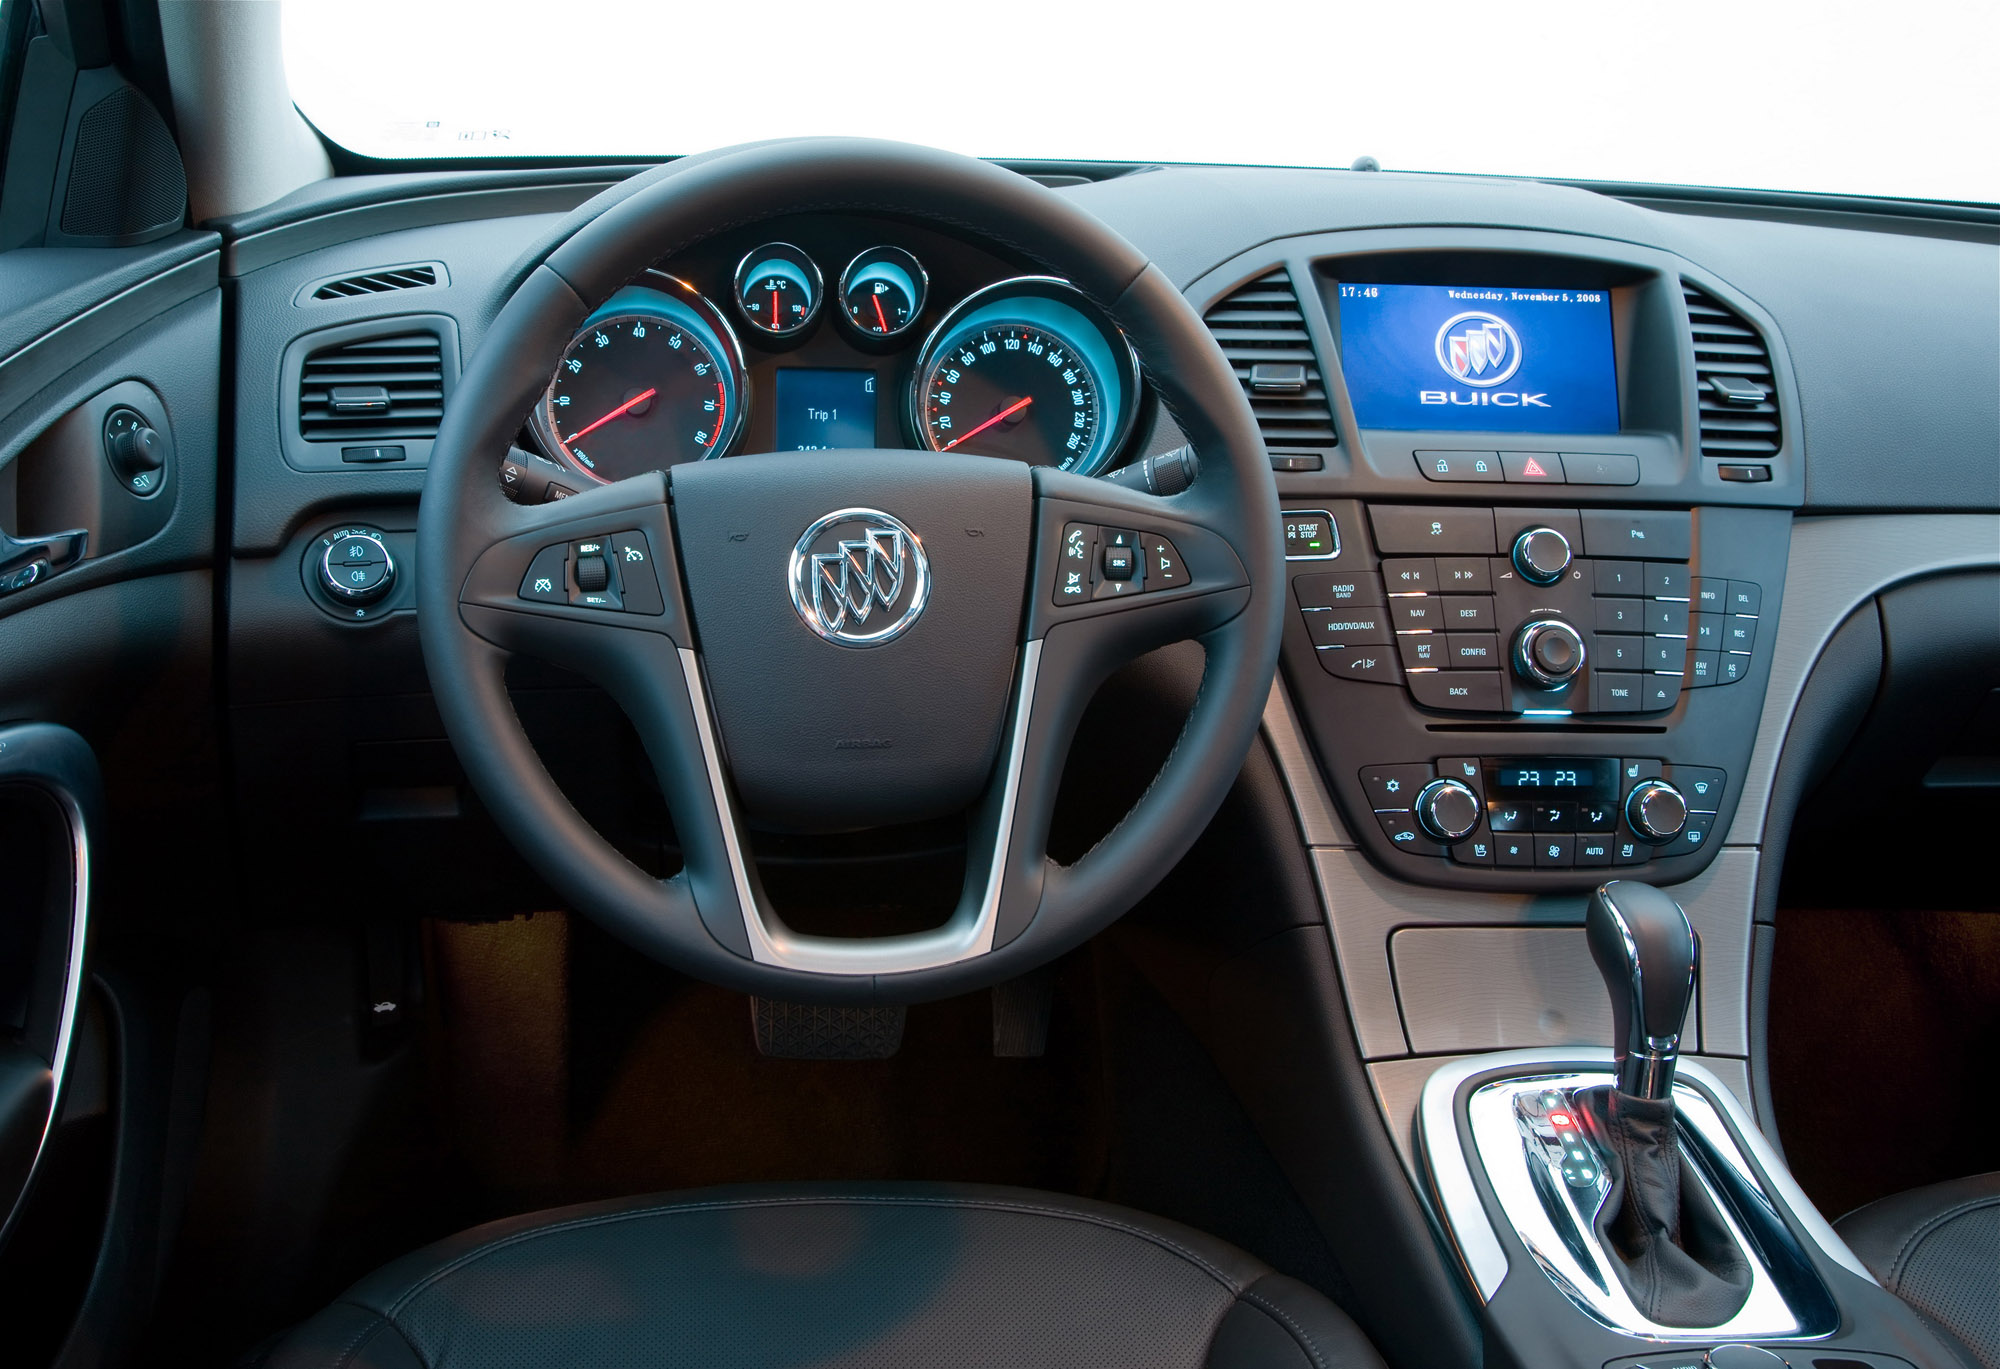 2008 Buick Regal Picture 19603